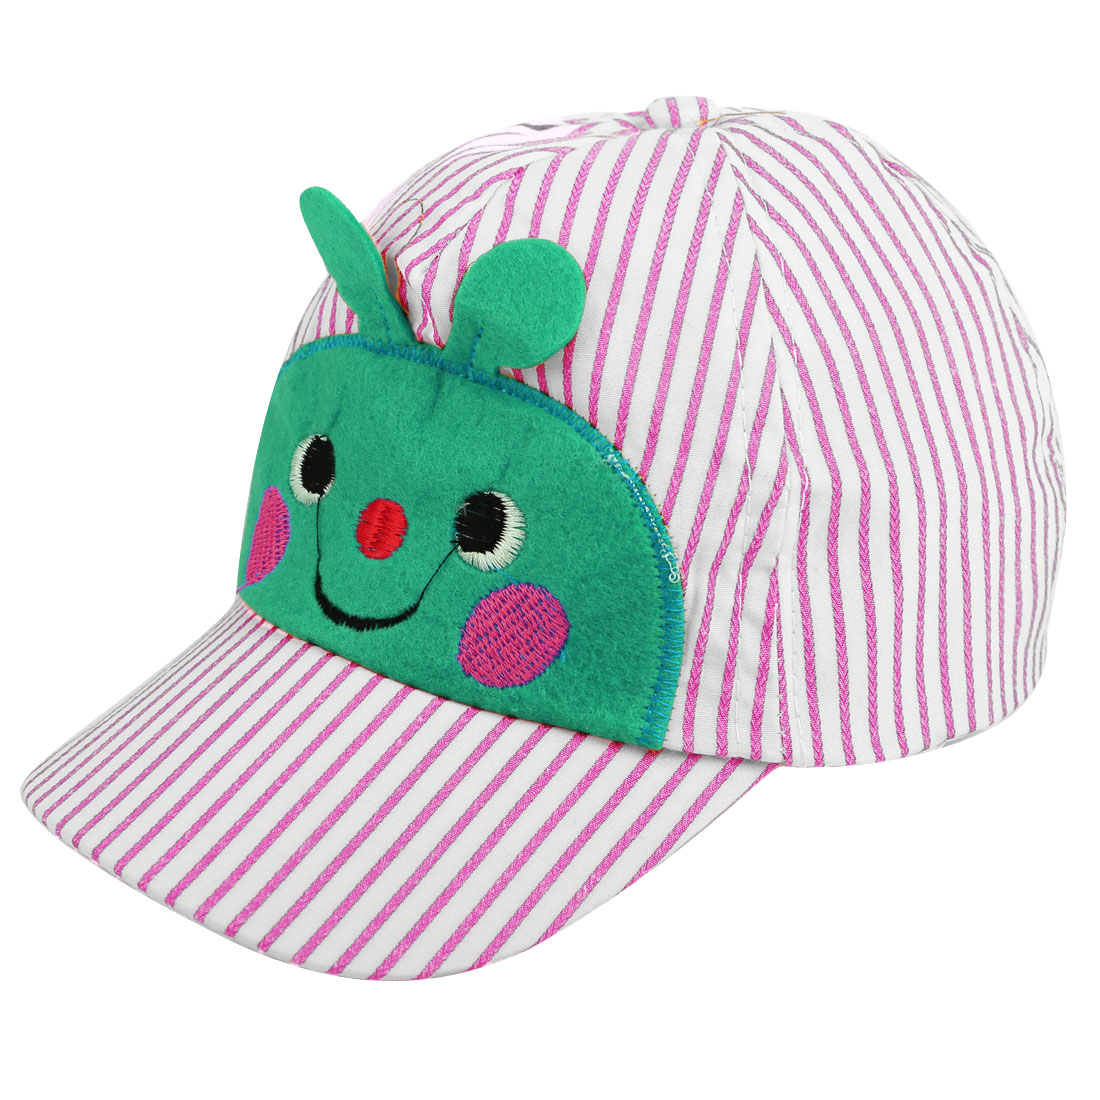 Fashion Kids Cartoon Bee Face Adjustable Baseball Cap Pink White